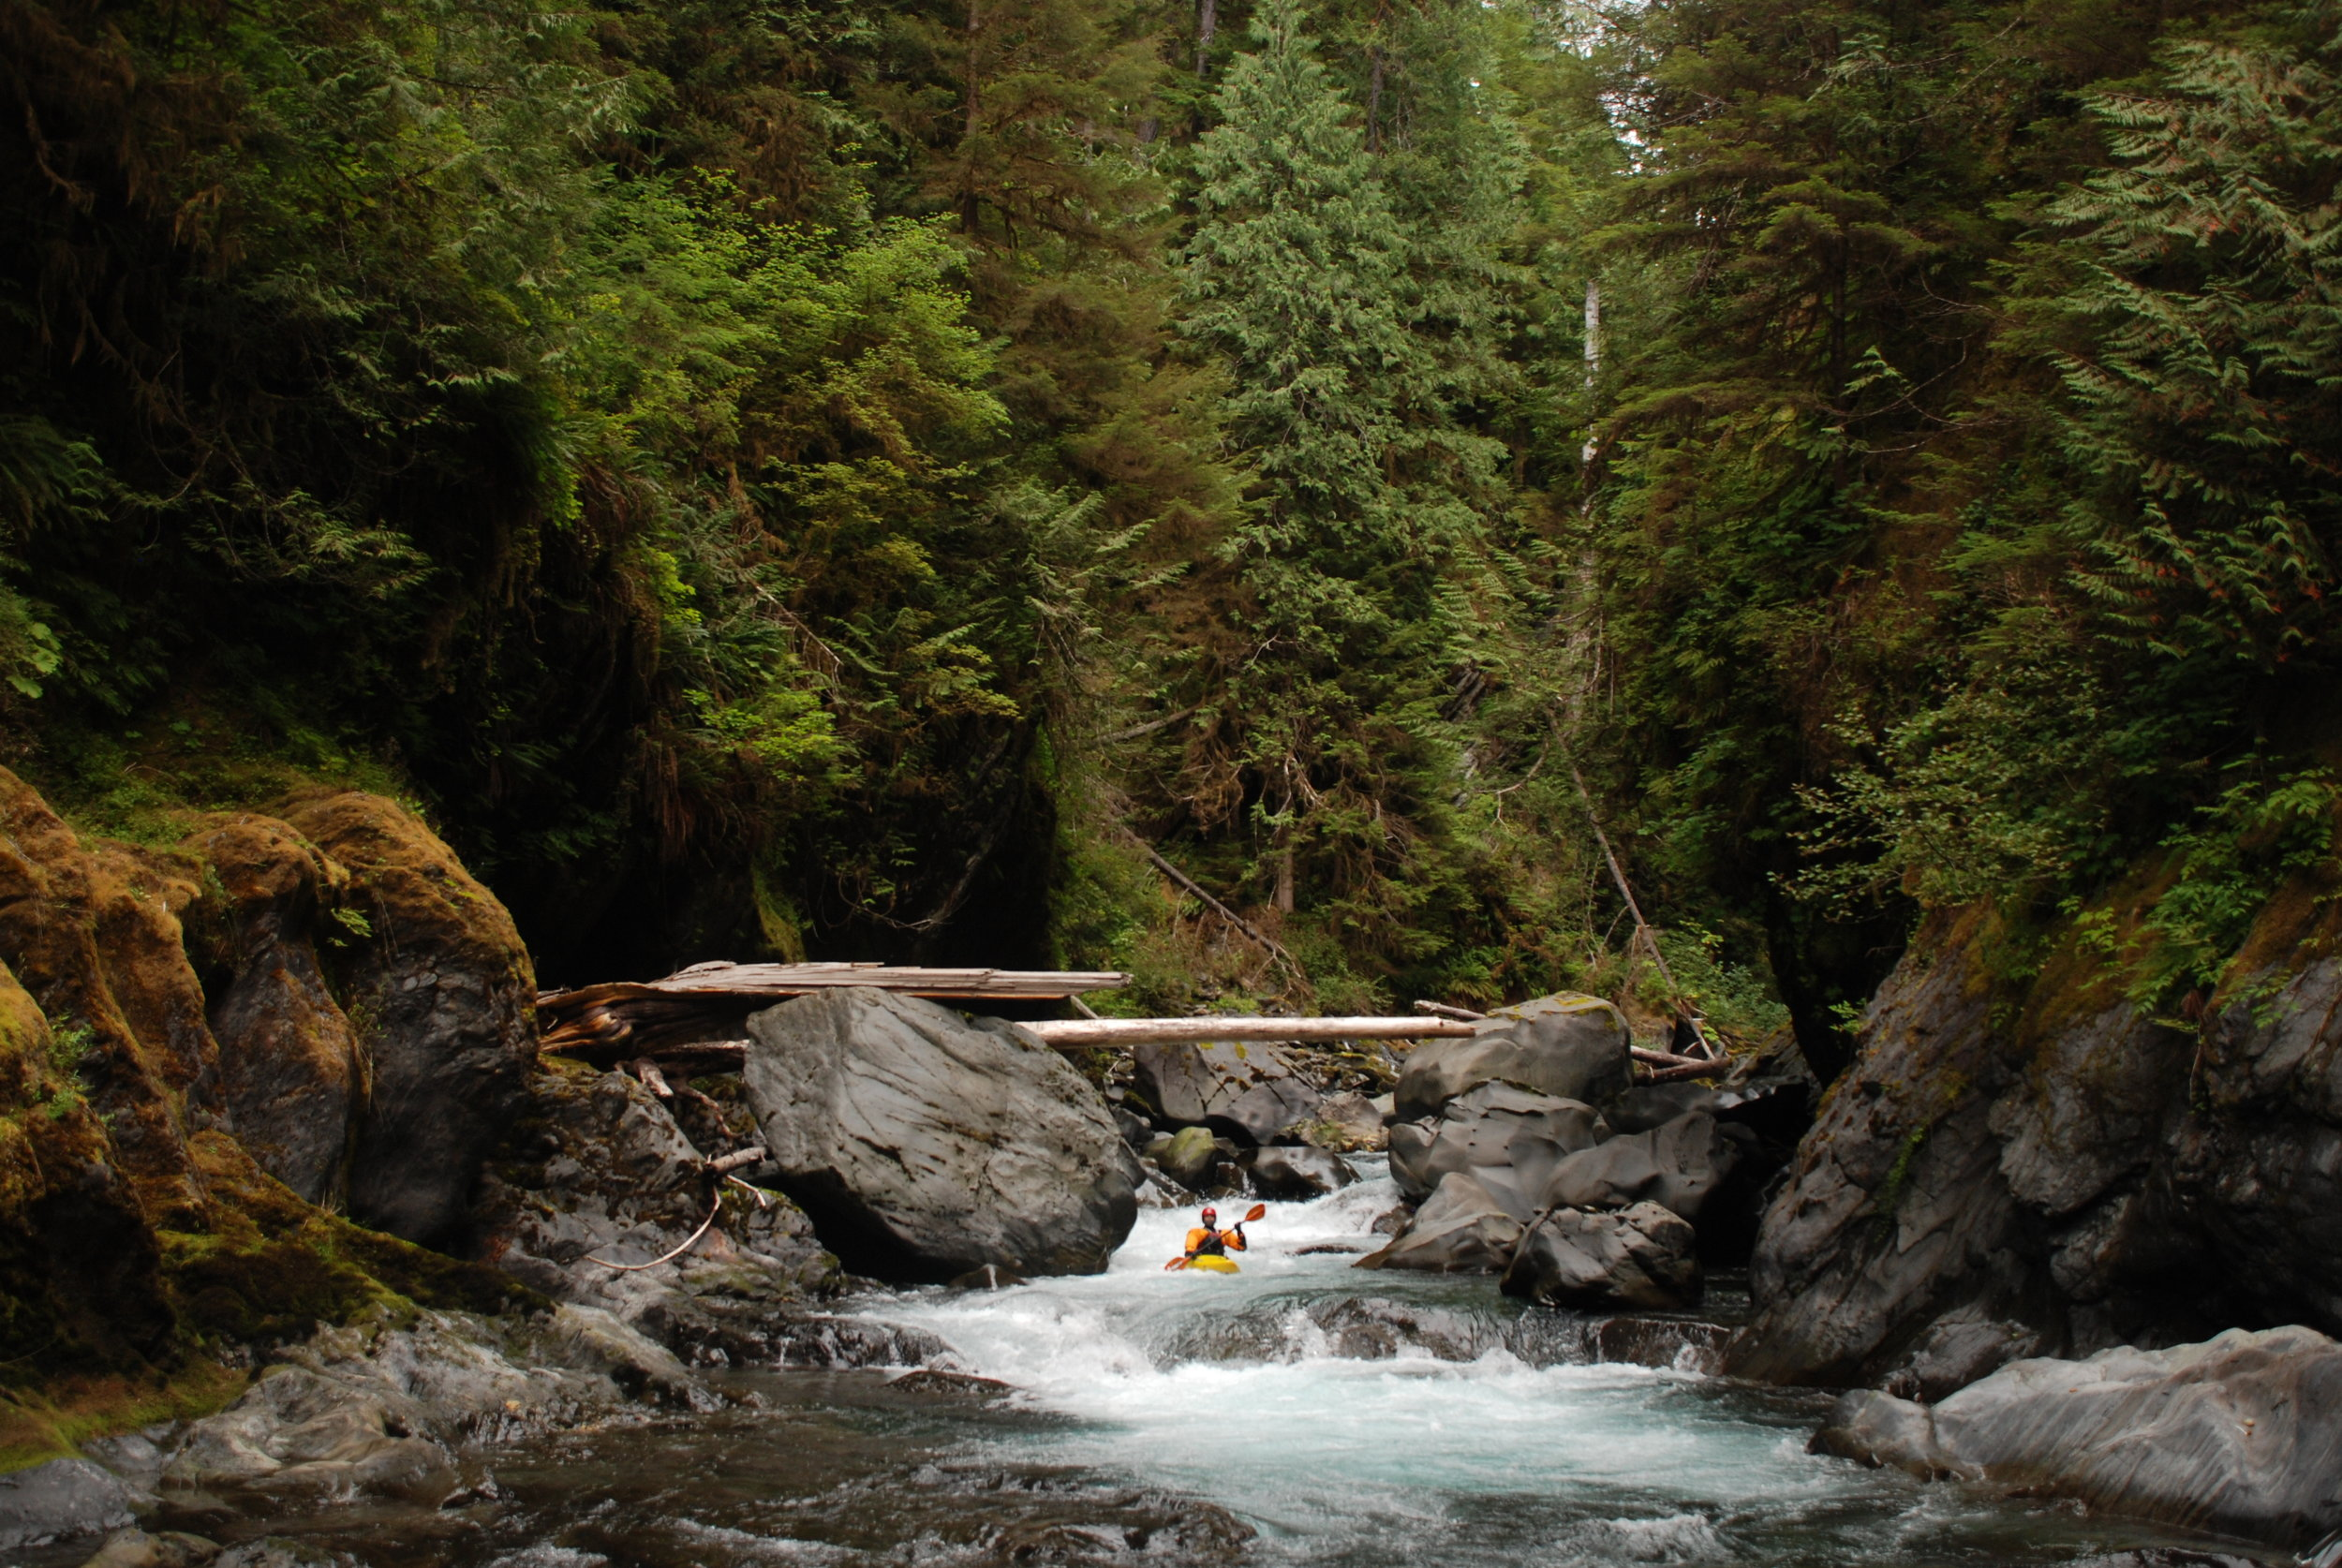 Paddling through the Quinault Gorge in the Wild Olympics, photo by Thomas O'Keefe